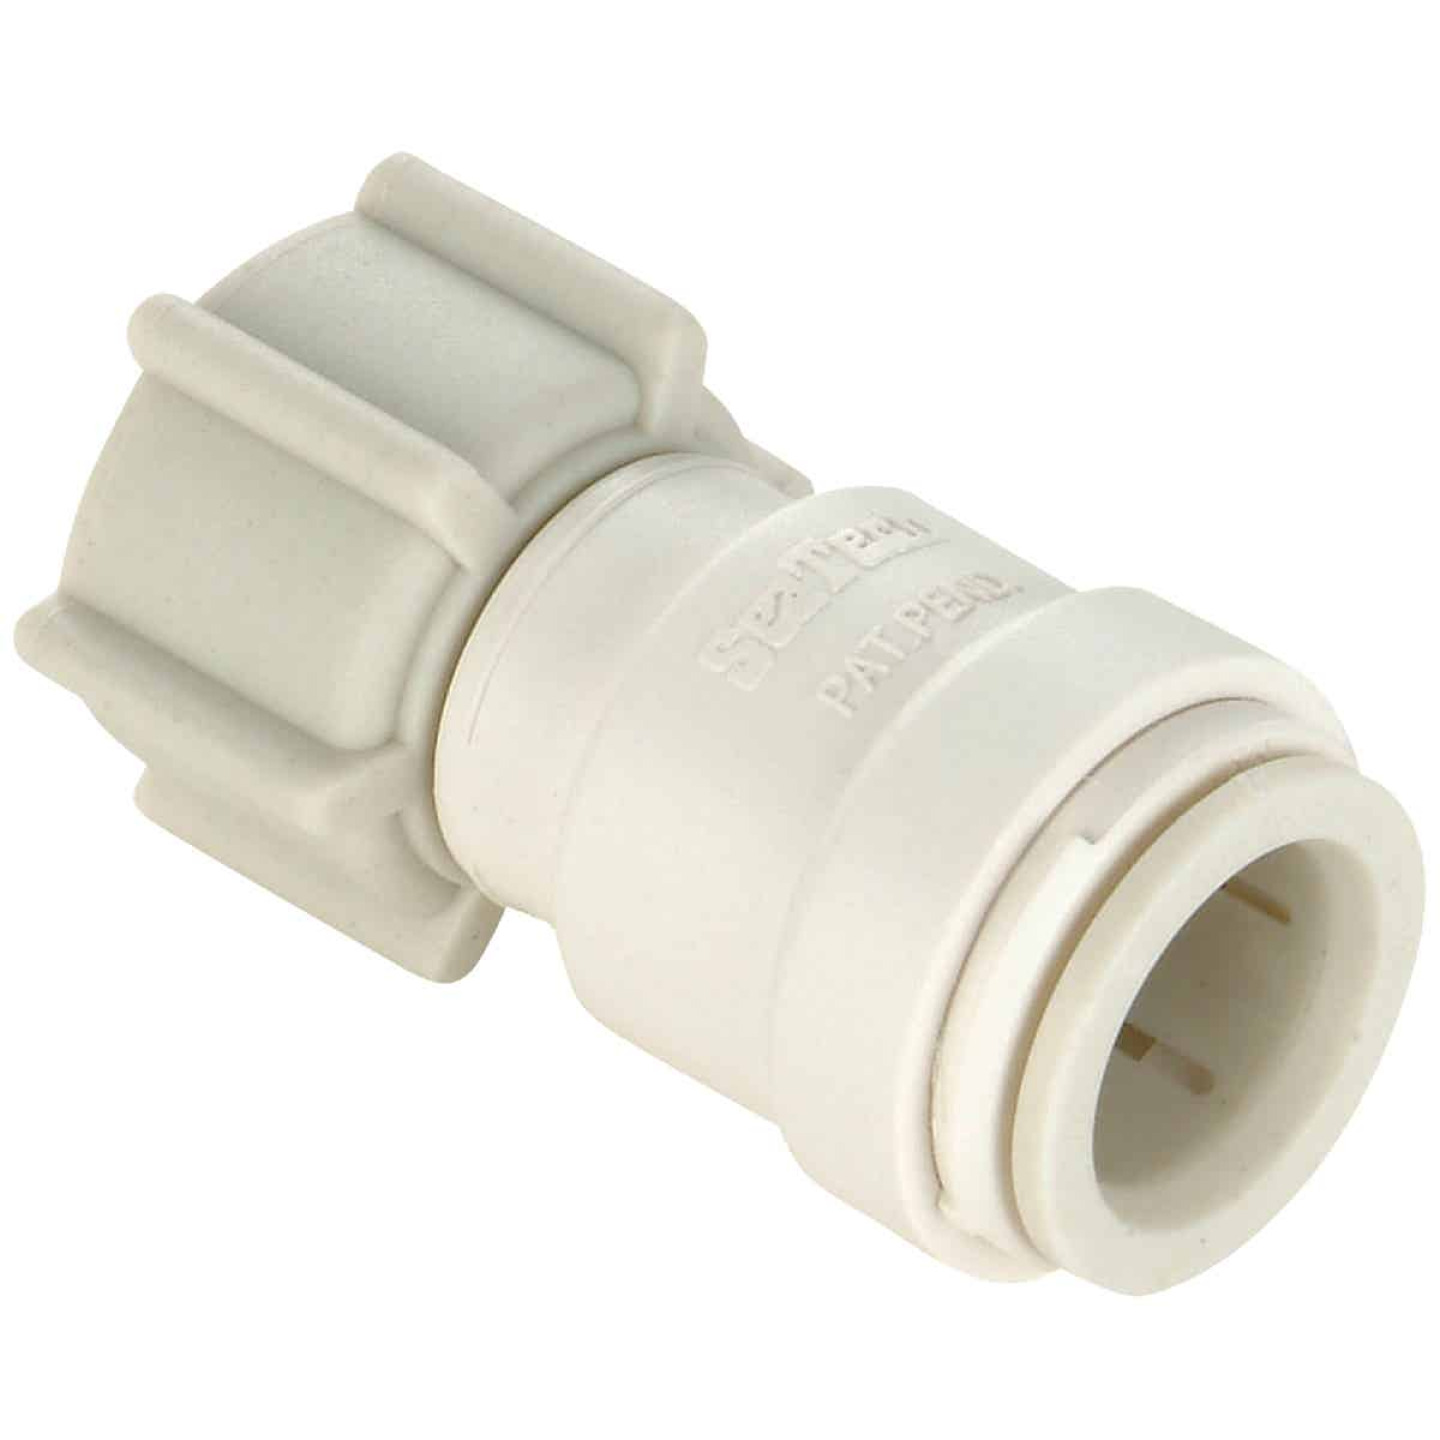 Watts 1/2 In. CTS x 1/2 In. FPT Quick Connect Swivel Plastic Connector Image 1